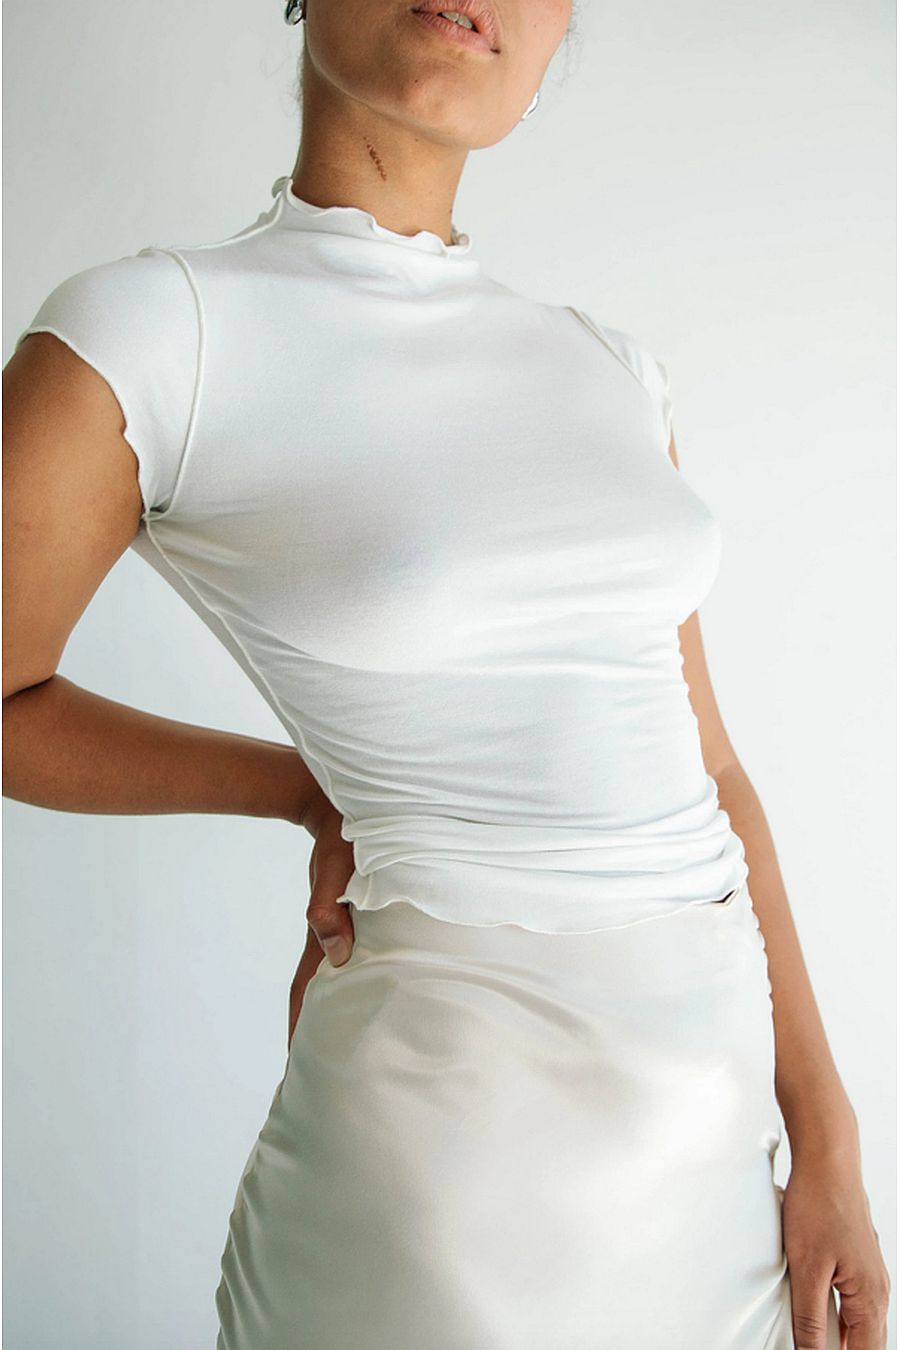 The Line by K Reese Mock Neck Top - White